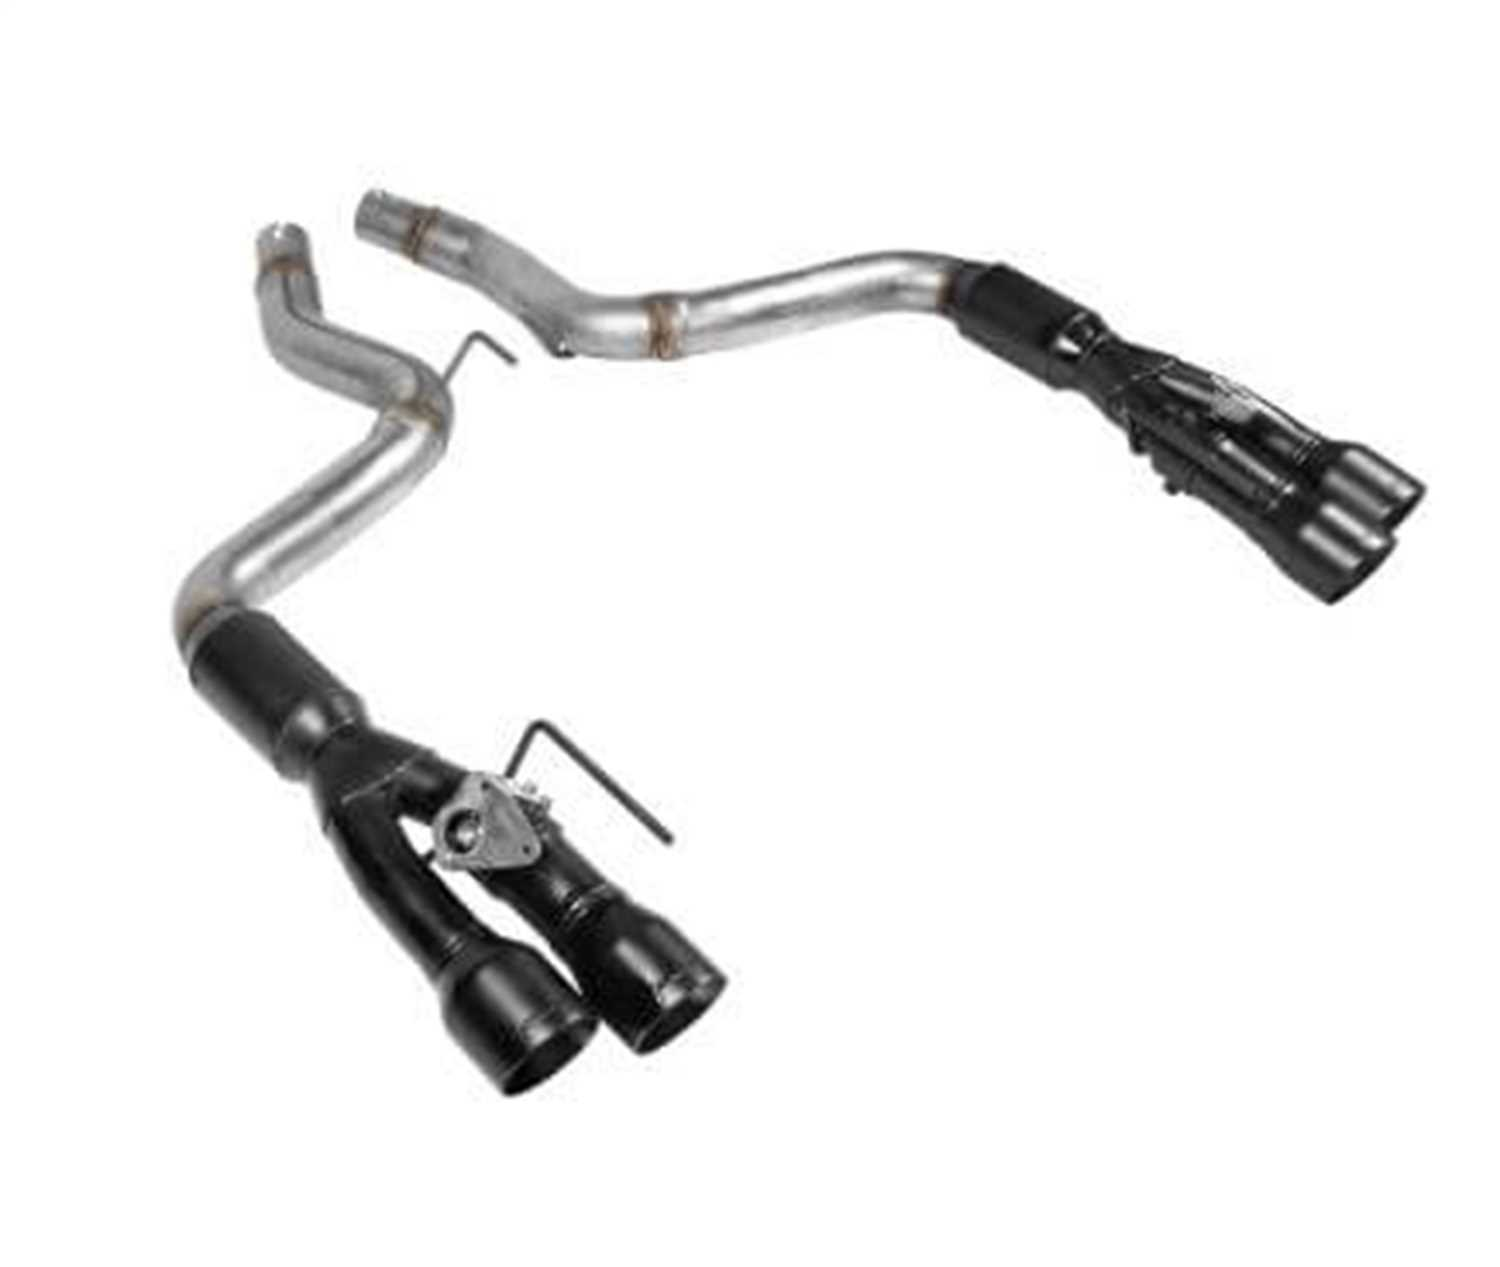 817824 Flowmaster Outlaw Series™ Axle Back Exhaust System